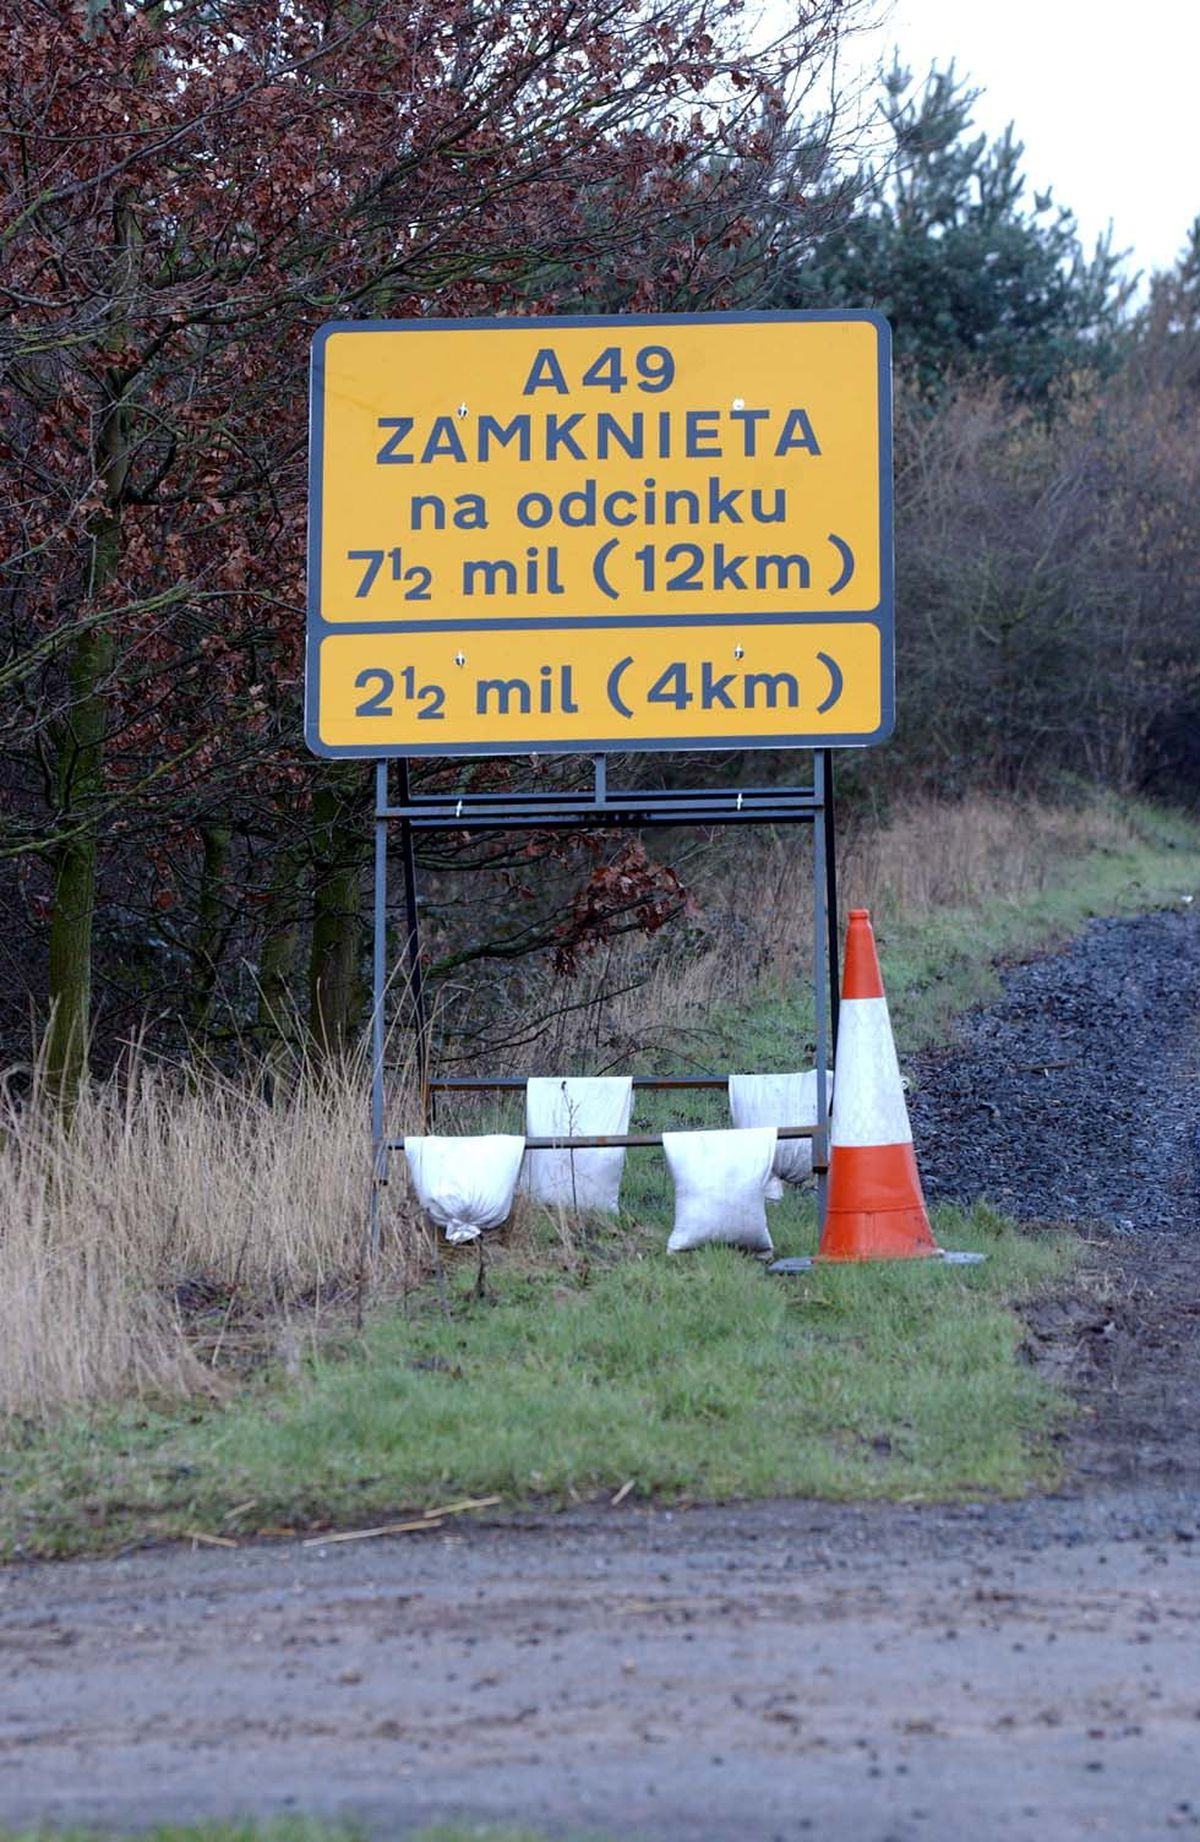 Motorists were left scratching their heads by the roadworks signs